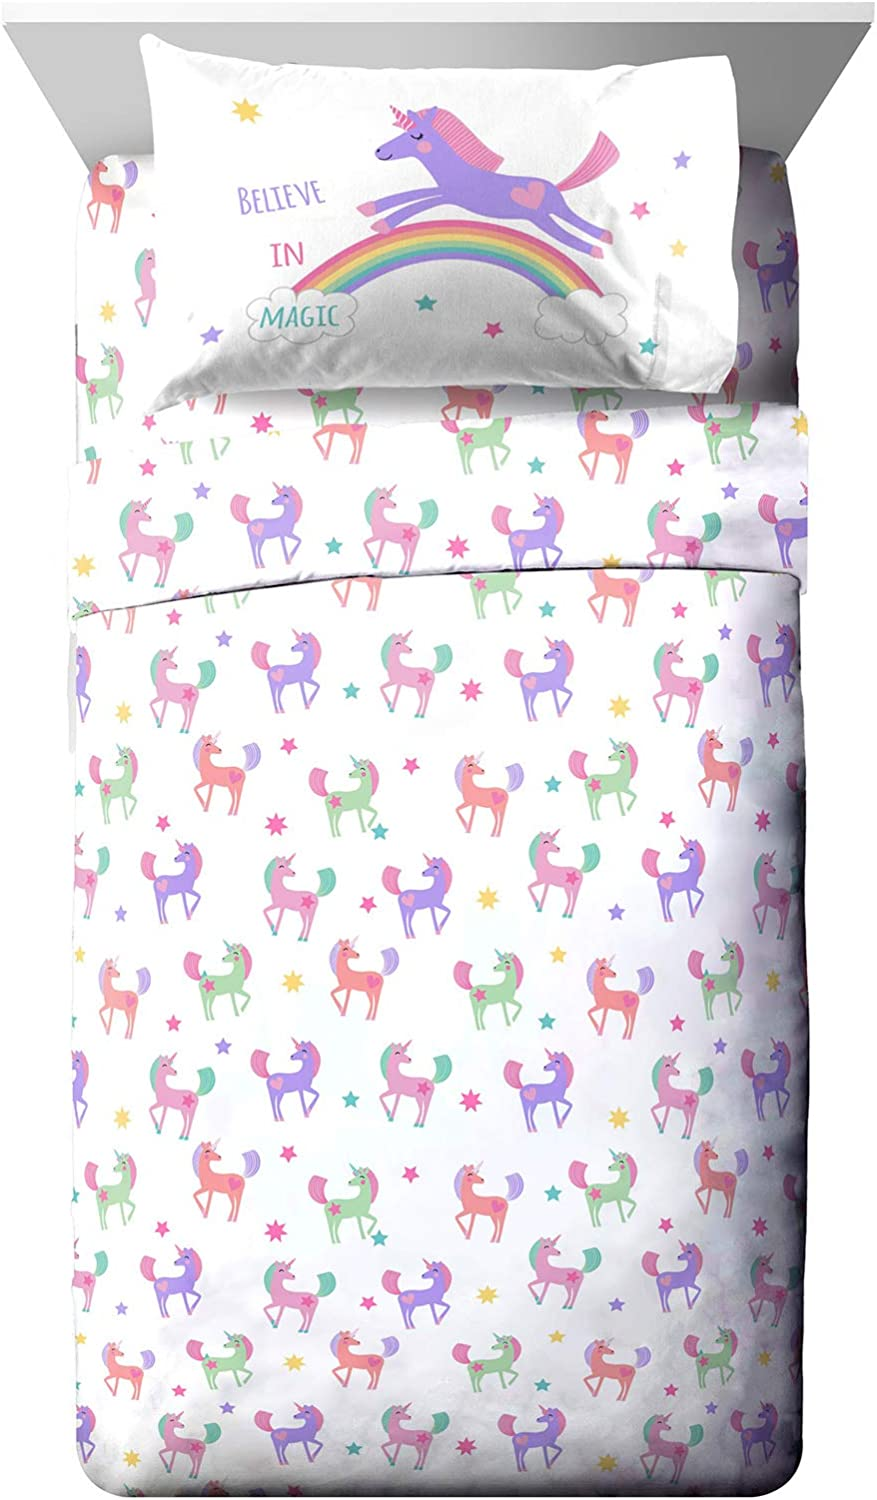 Jay Franco Trend Collector Believe Twin Sheet Set - 3 Piece Set Super Soft and Cozy Kid's Bedding - Fade Resistant Microfiber Sheets